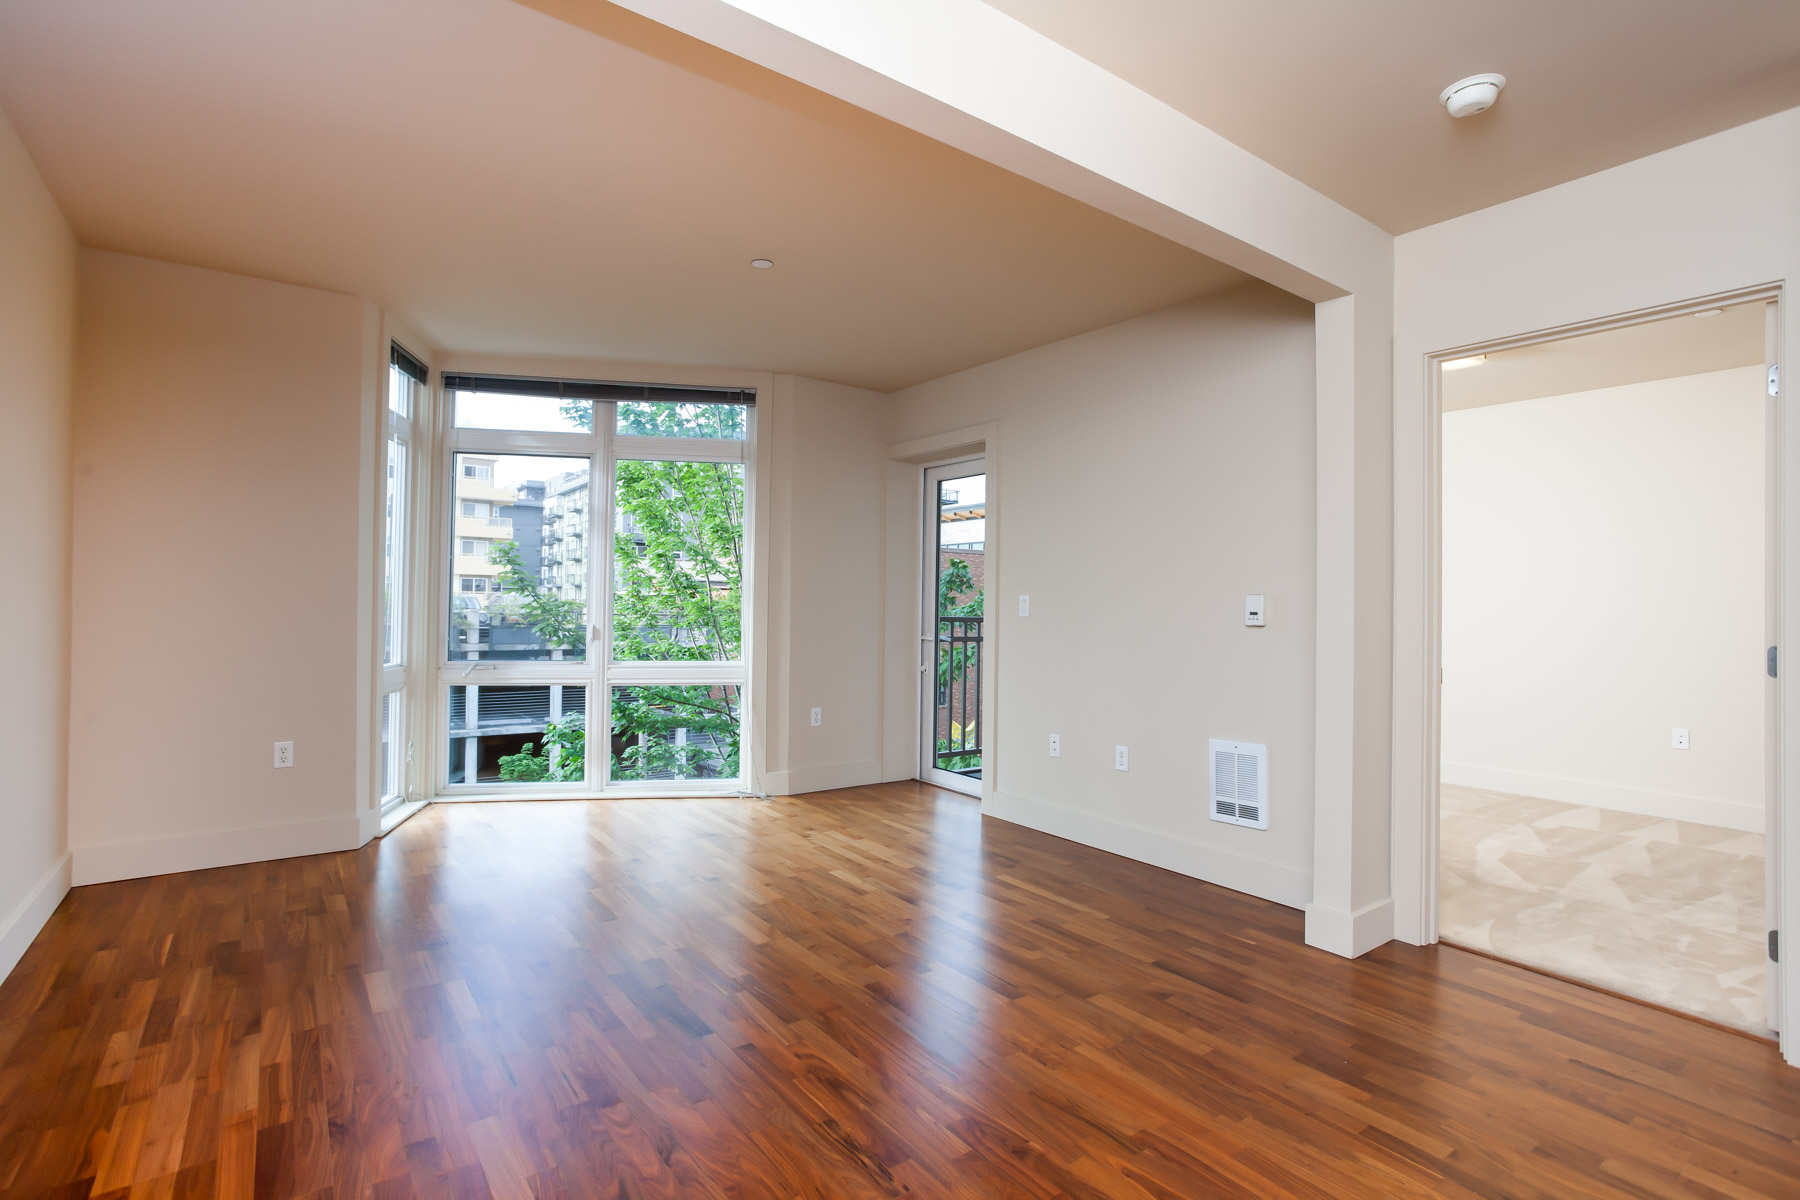 Matae belltown condominium spacious 1 bedroom den with Floor to ceiling windows for sale